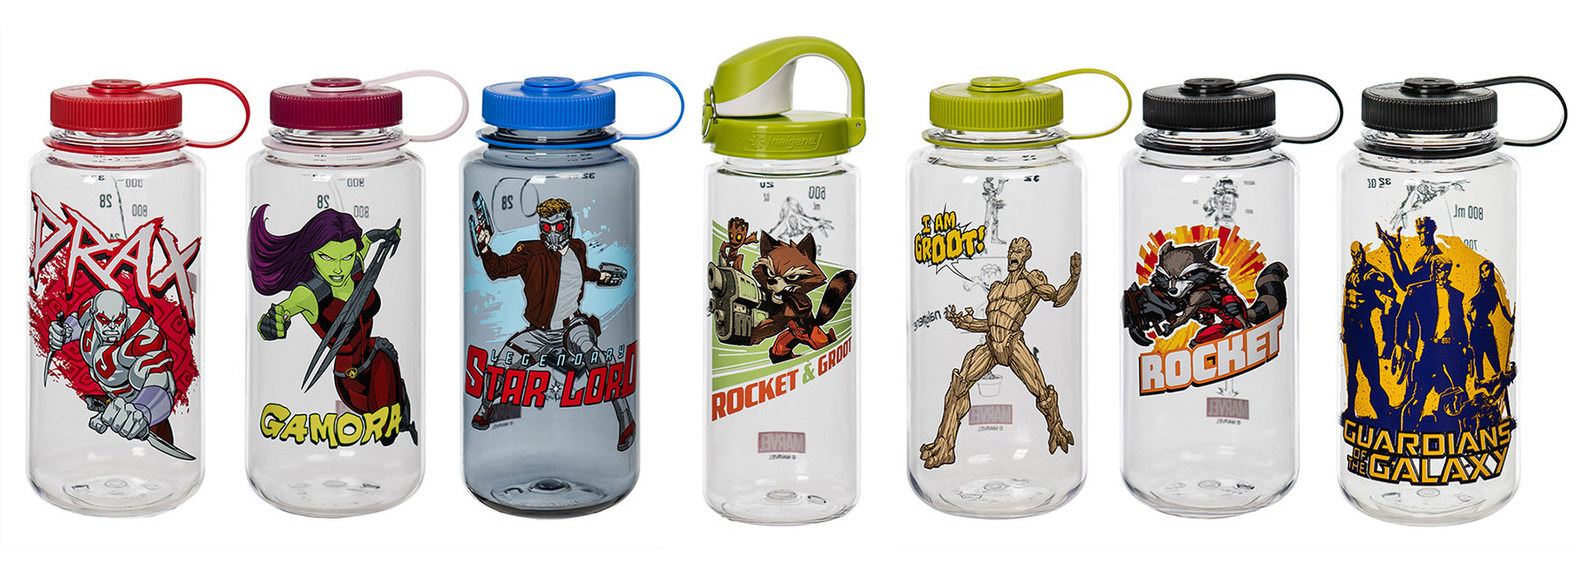 1a211bef9a More Marvel Water Bottles, With Guardians of the Galaxy – Comics ...